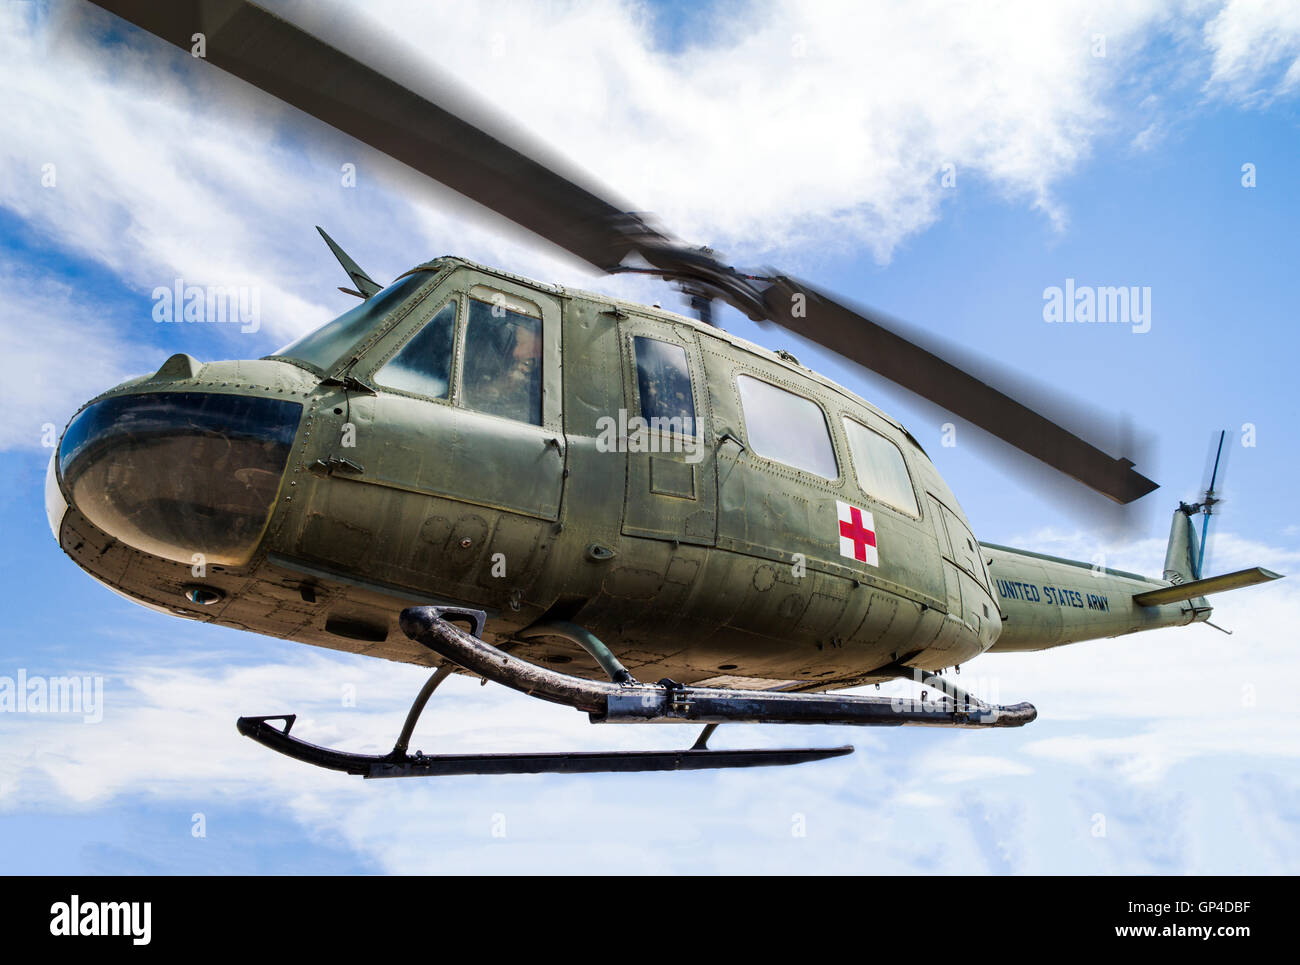 UH-1; Iroquois; Huey; military helicopter; Fremont County Airport; Penrose; Colorado; USA - Stock Image